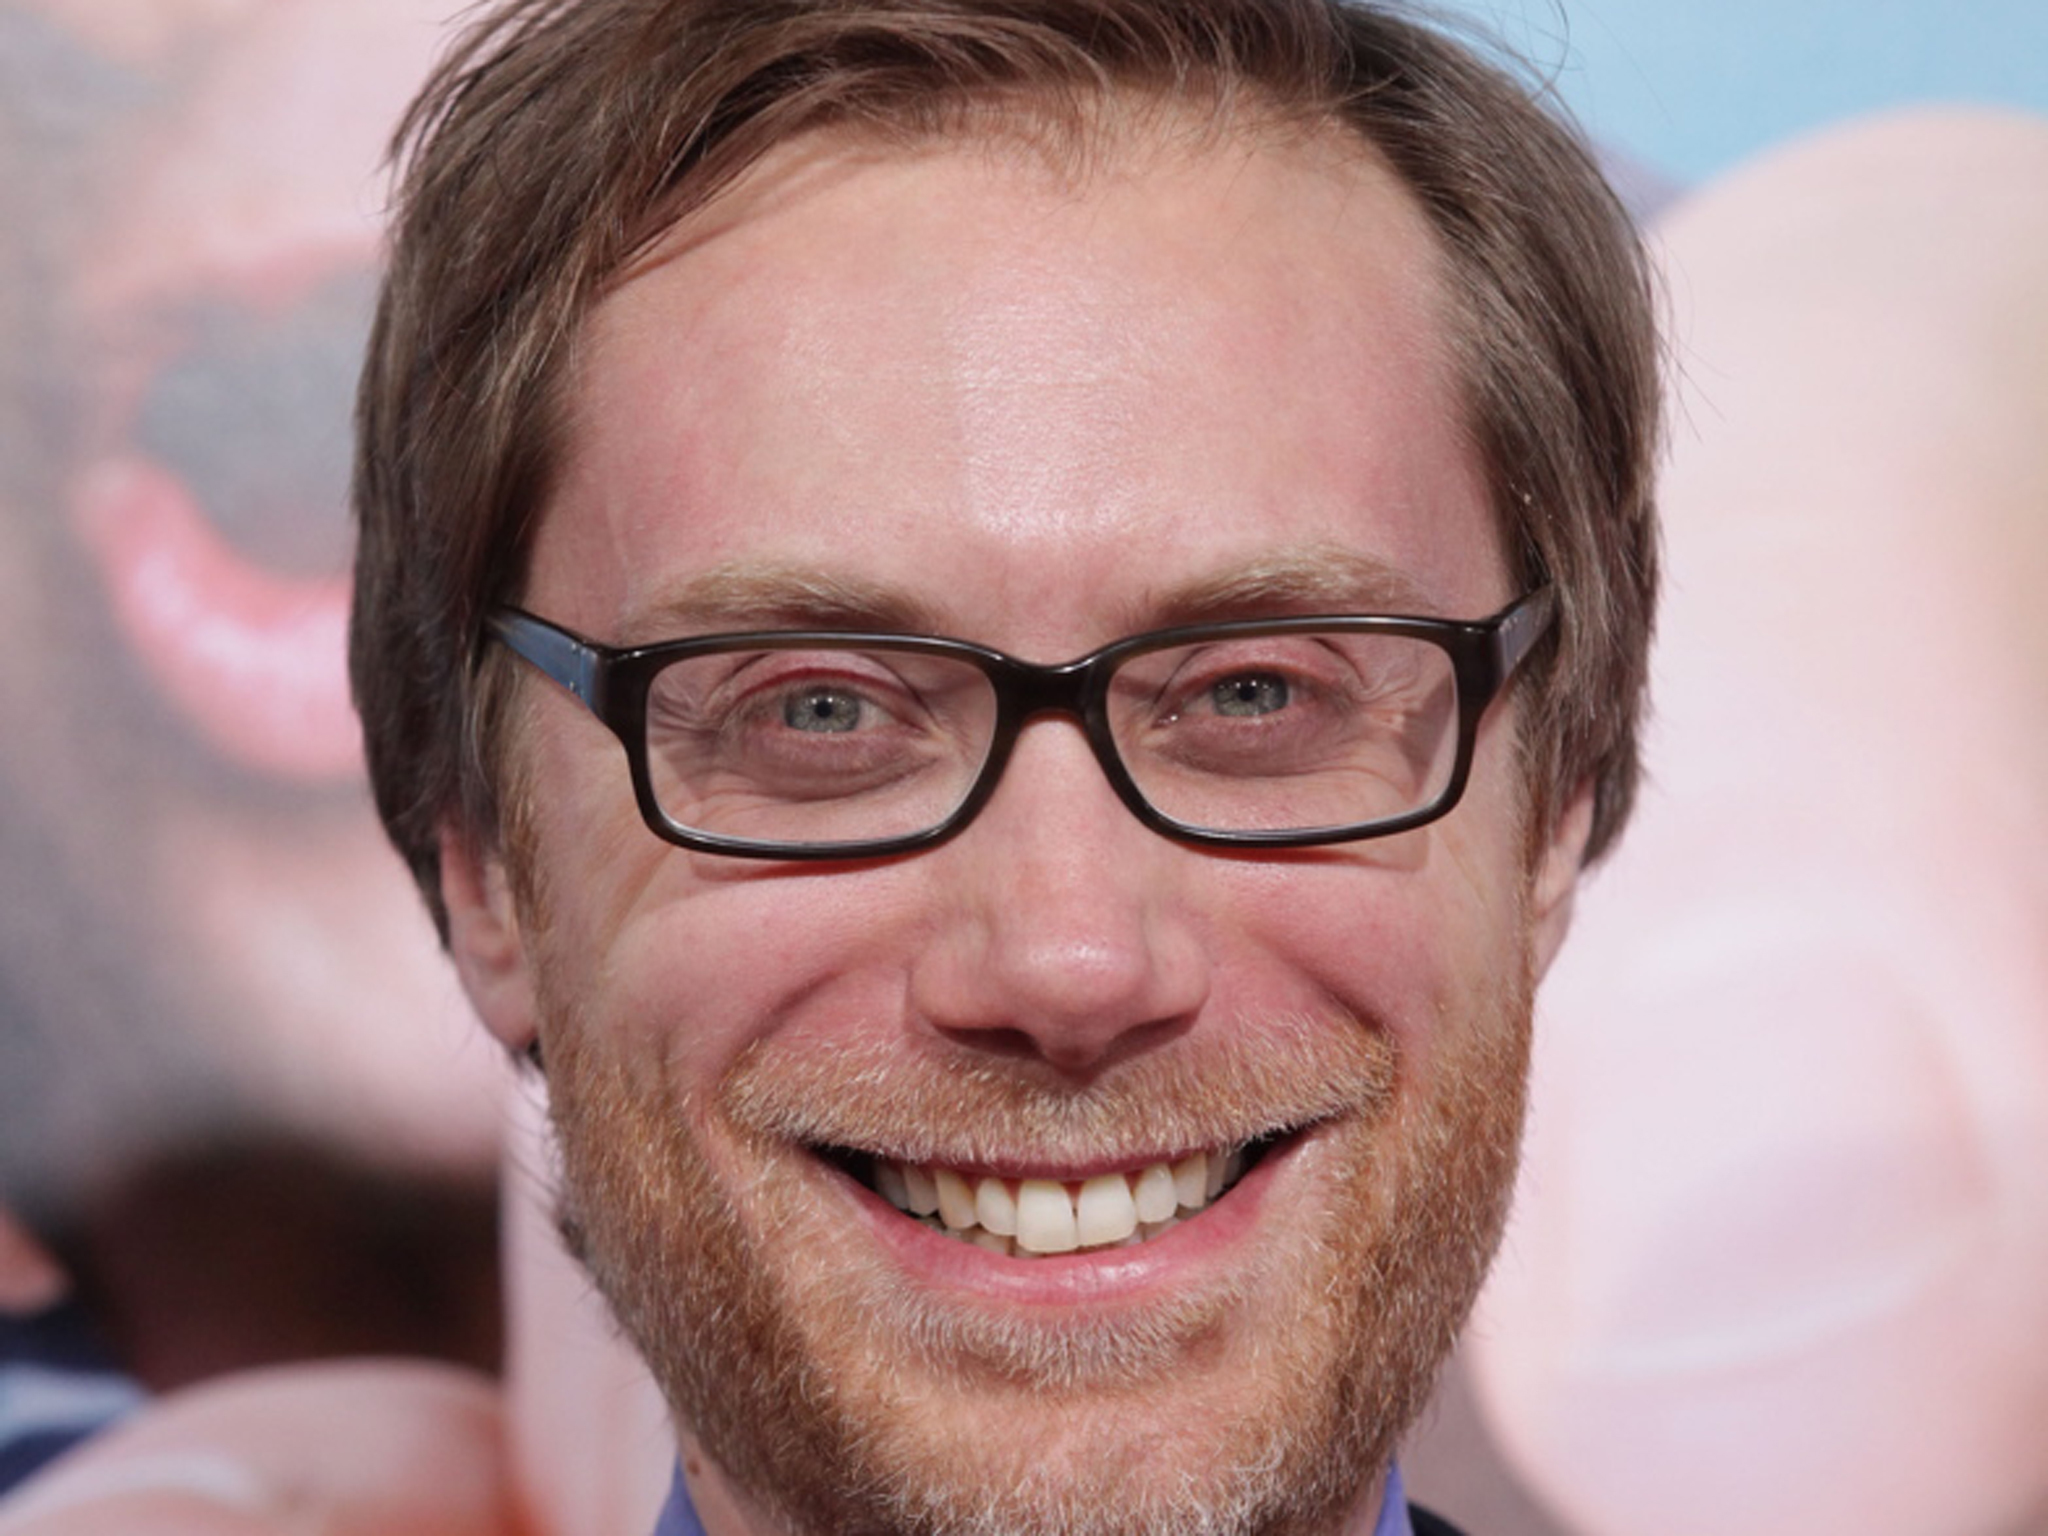 photo Stephen Merchant (born 1974)